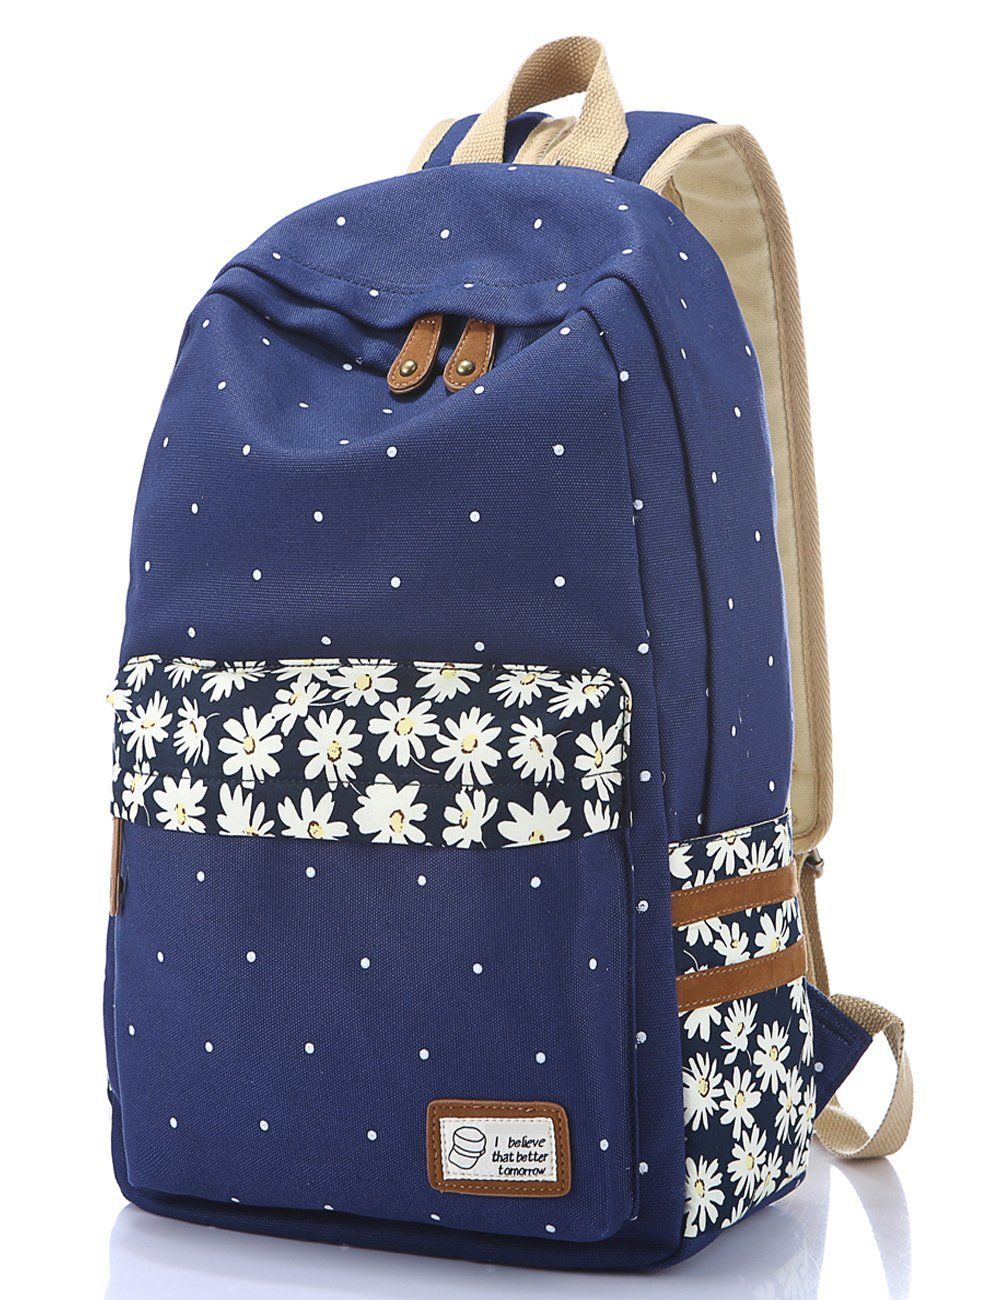 9a1f950463ca Leaper Casual Style Polka Dots Canvas Oxford Laptop Backpack  School Bag   Travel Daypack  Handbag with Laptop Lining (FP-dark blue)